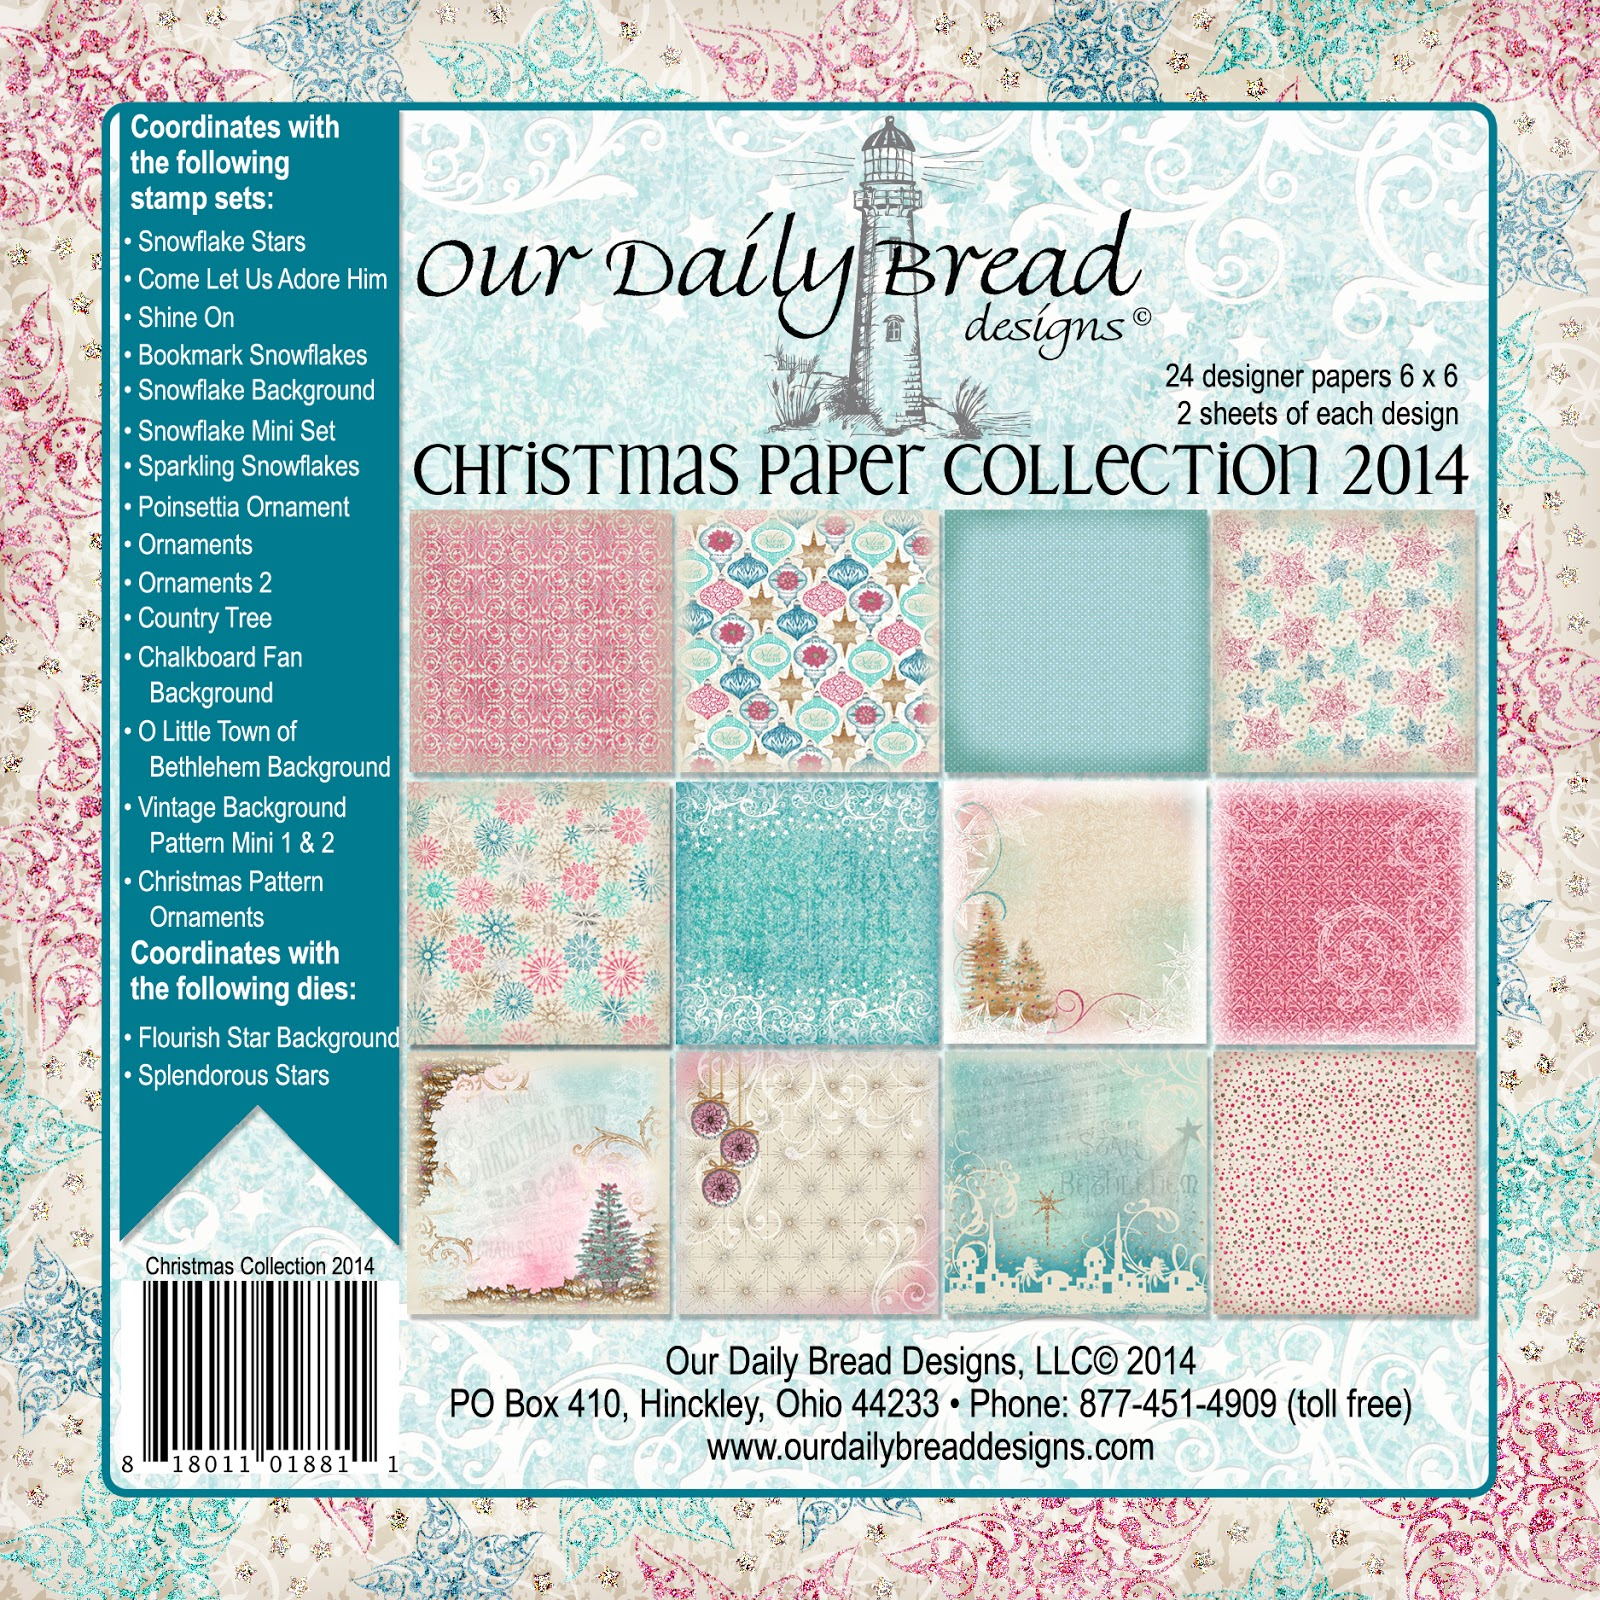 https://www.ourdailybreaddesigns.com/index.php/christmas-collection-2014-6x6-paper-pad.html